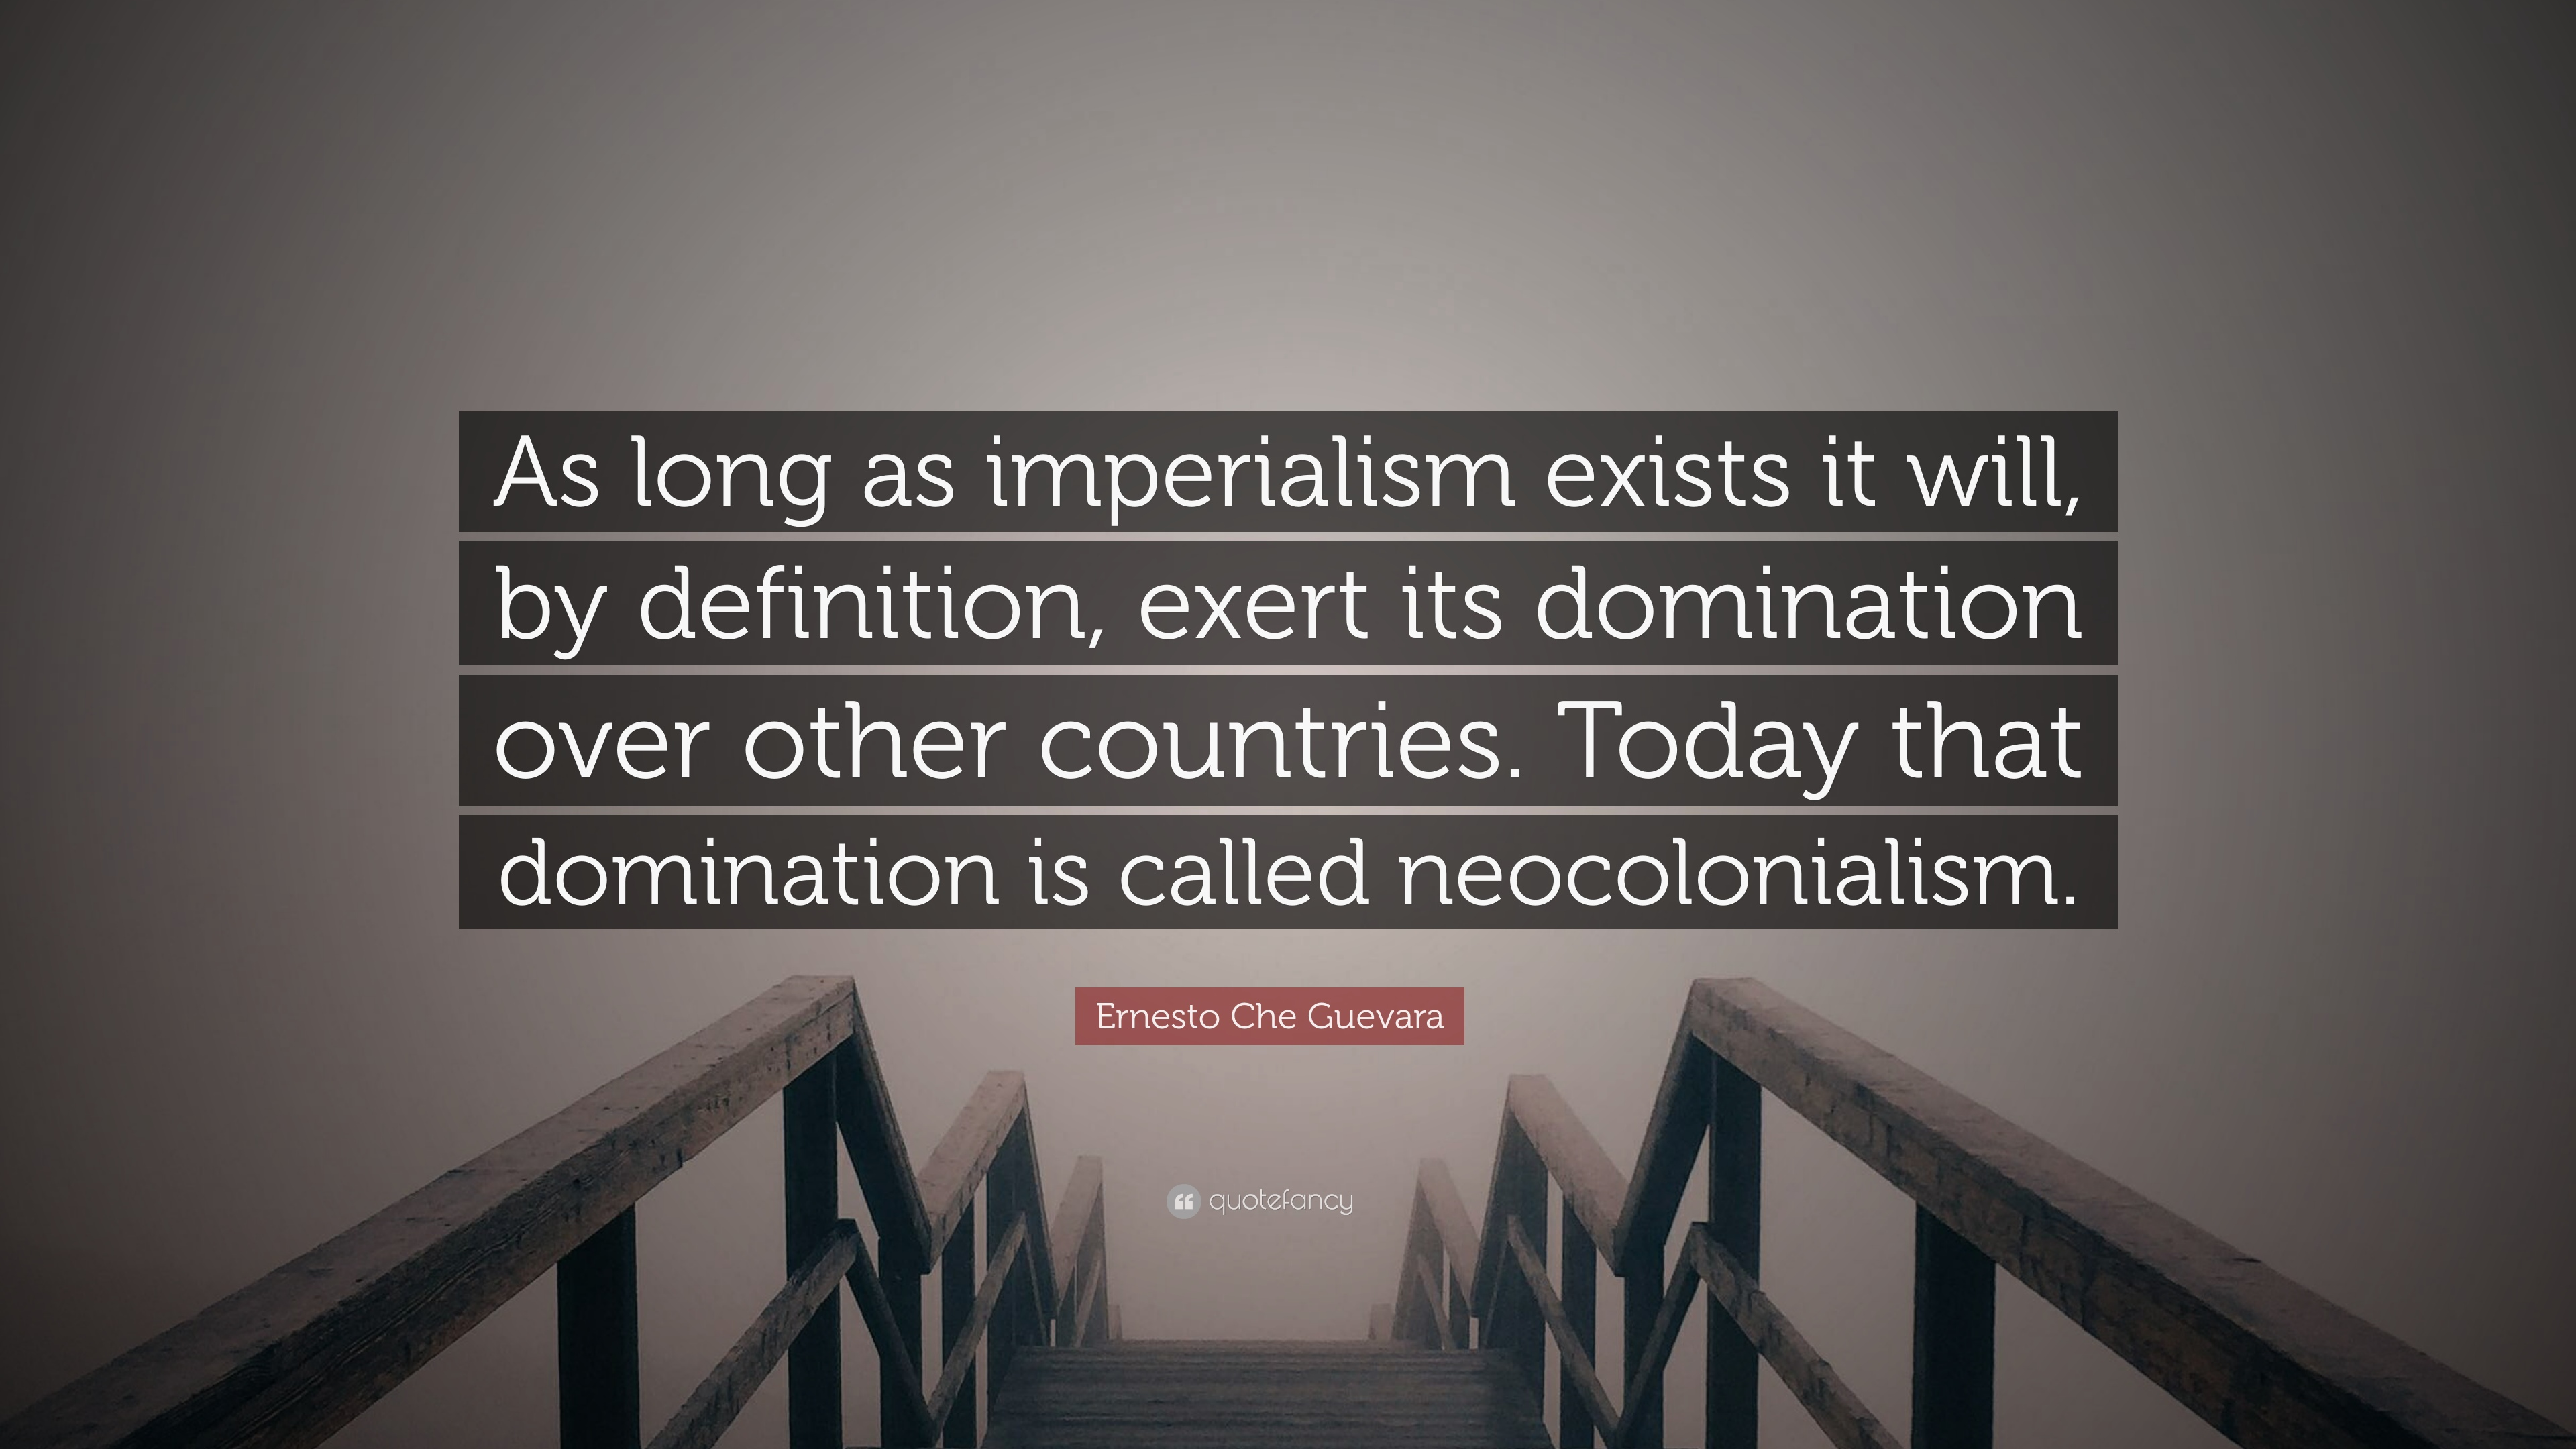 Ernesto Che Guevara Quote: U201cAs Long As Imperialism Exists It Will, By  Definition